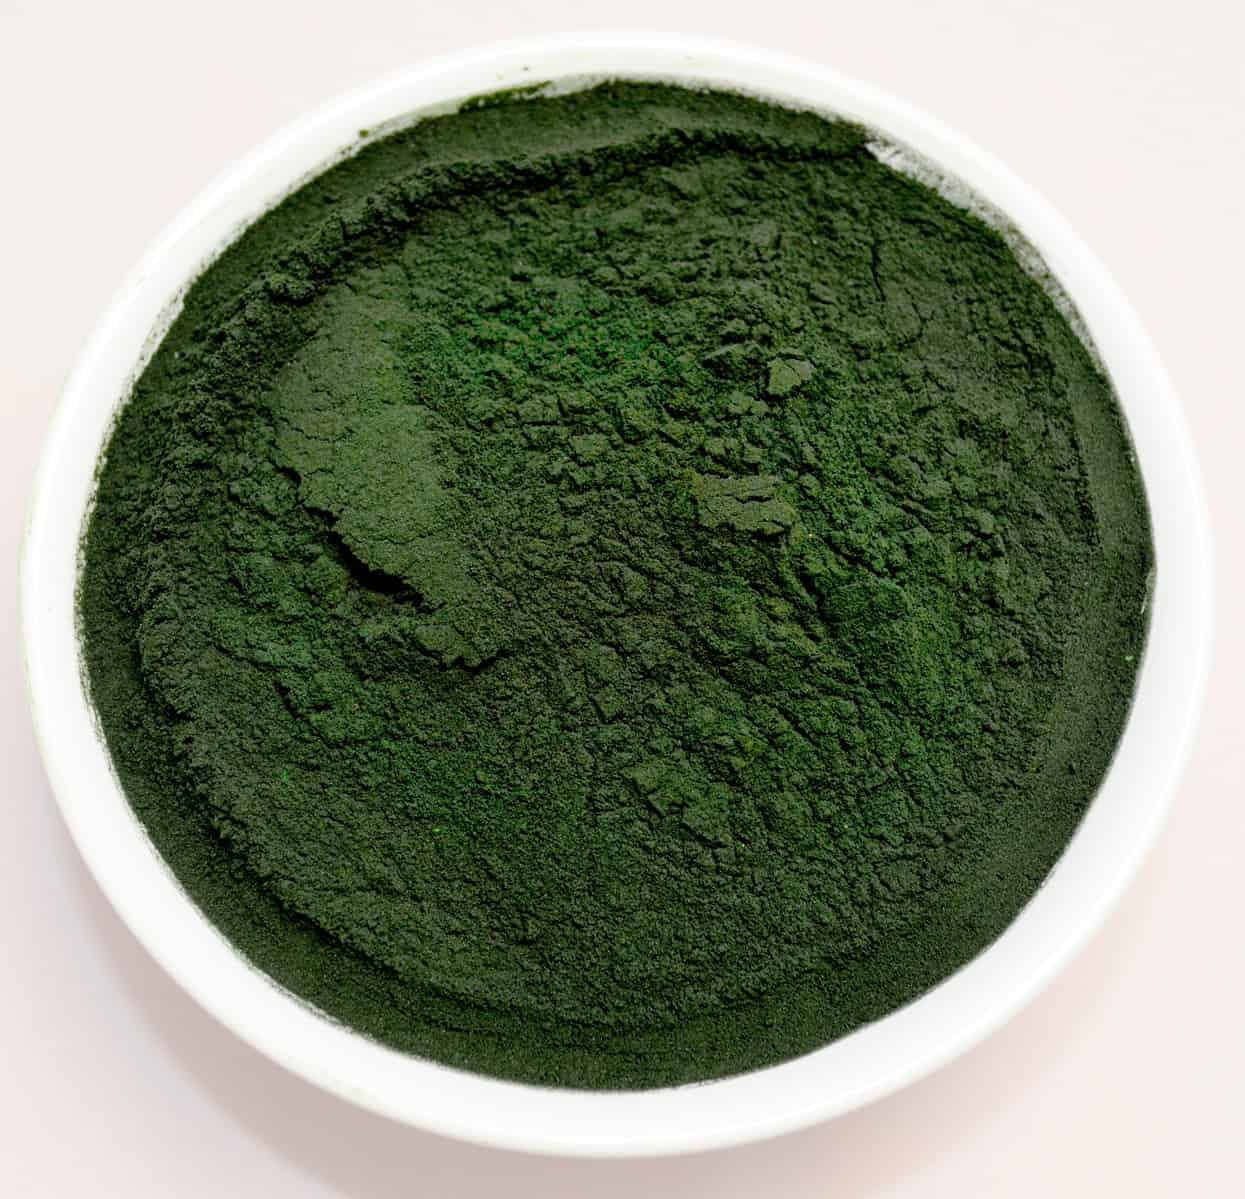 Battle of the Supergreens: Wheatgrass vs Spirulina - Alt Protein